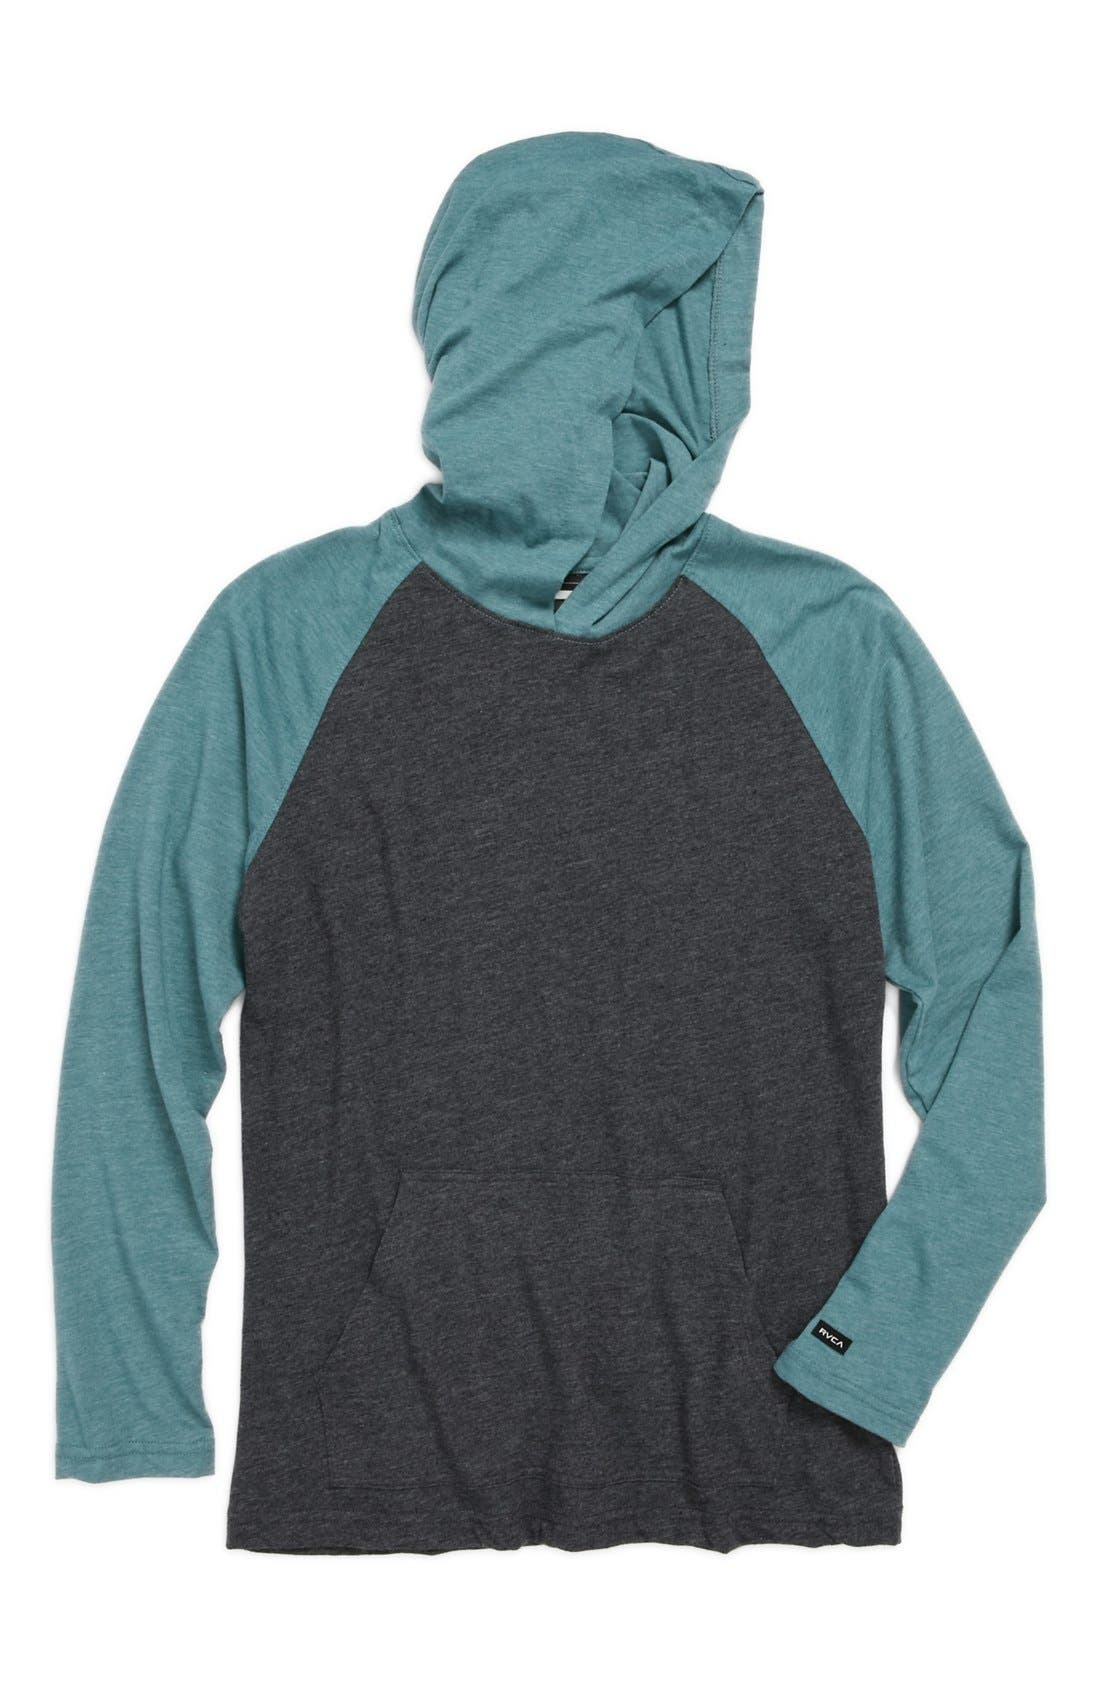 Alternate Image 1 Selected - RVCA 'Castro' Hoodie (Big Boys)